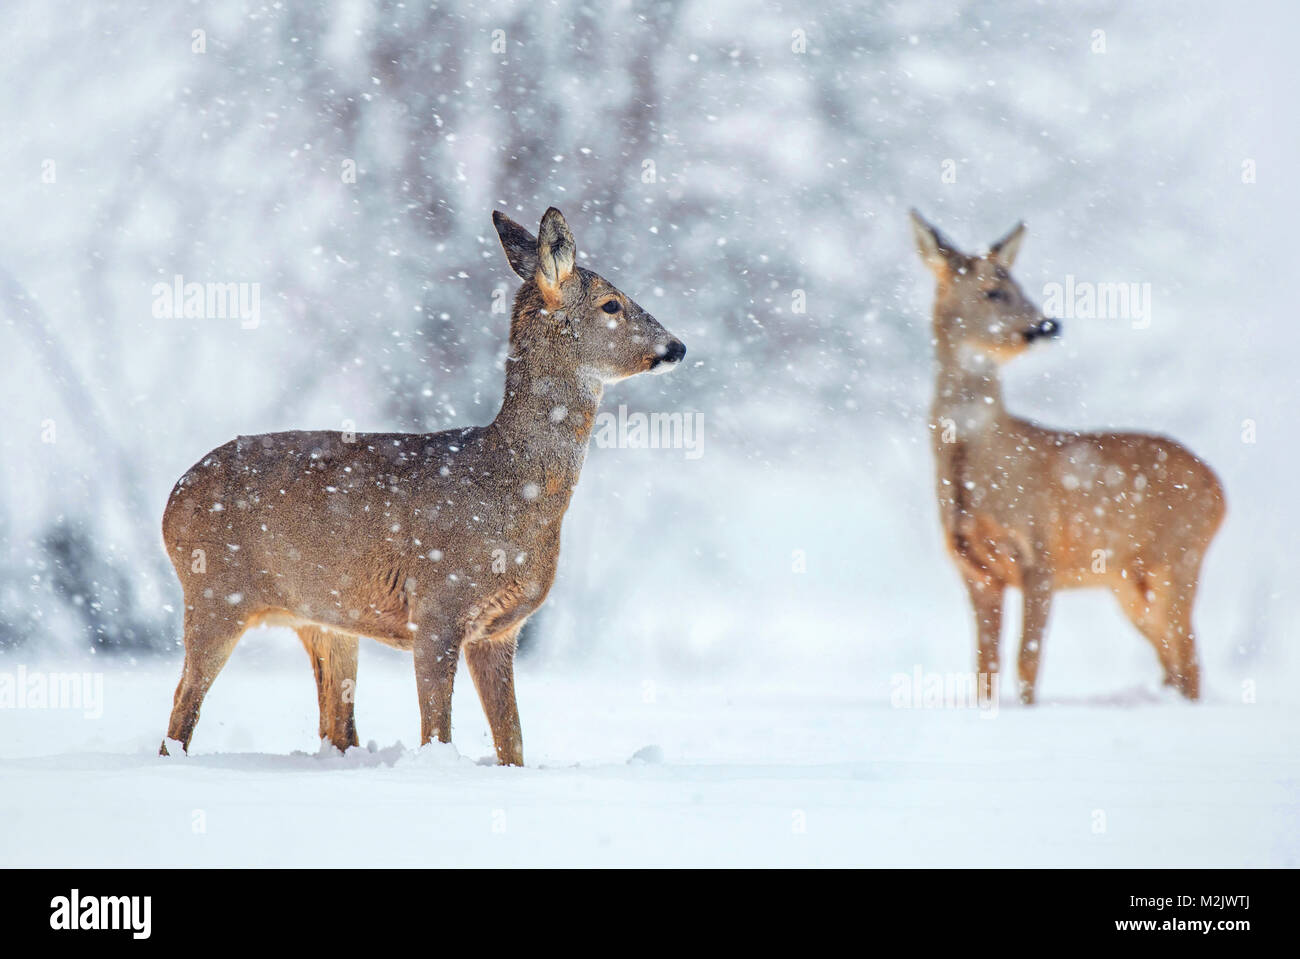 Wild roe deer standing in a snow covered field during snowfall - Stock Image